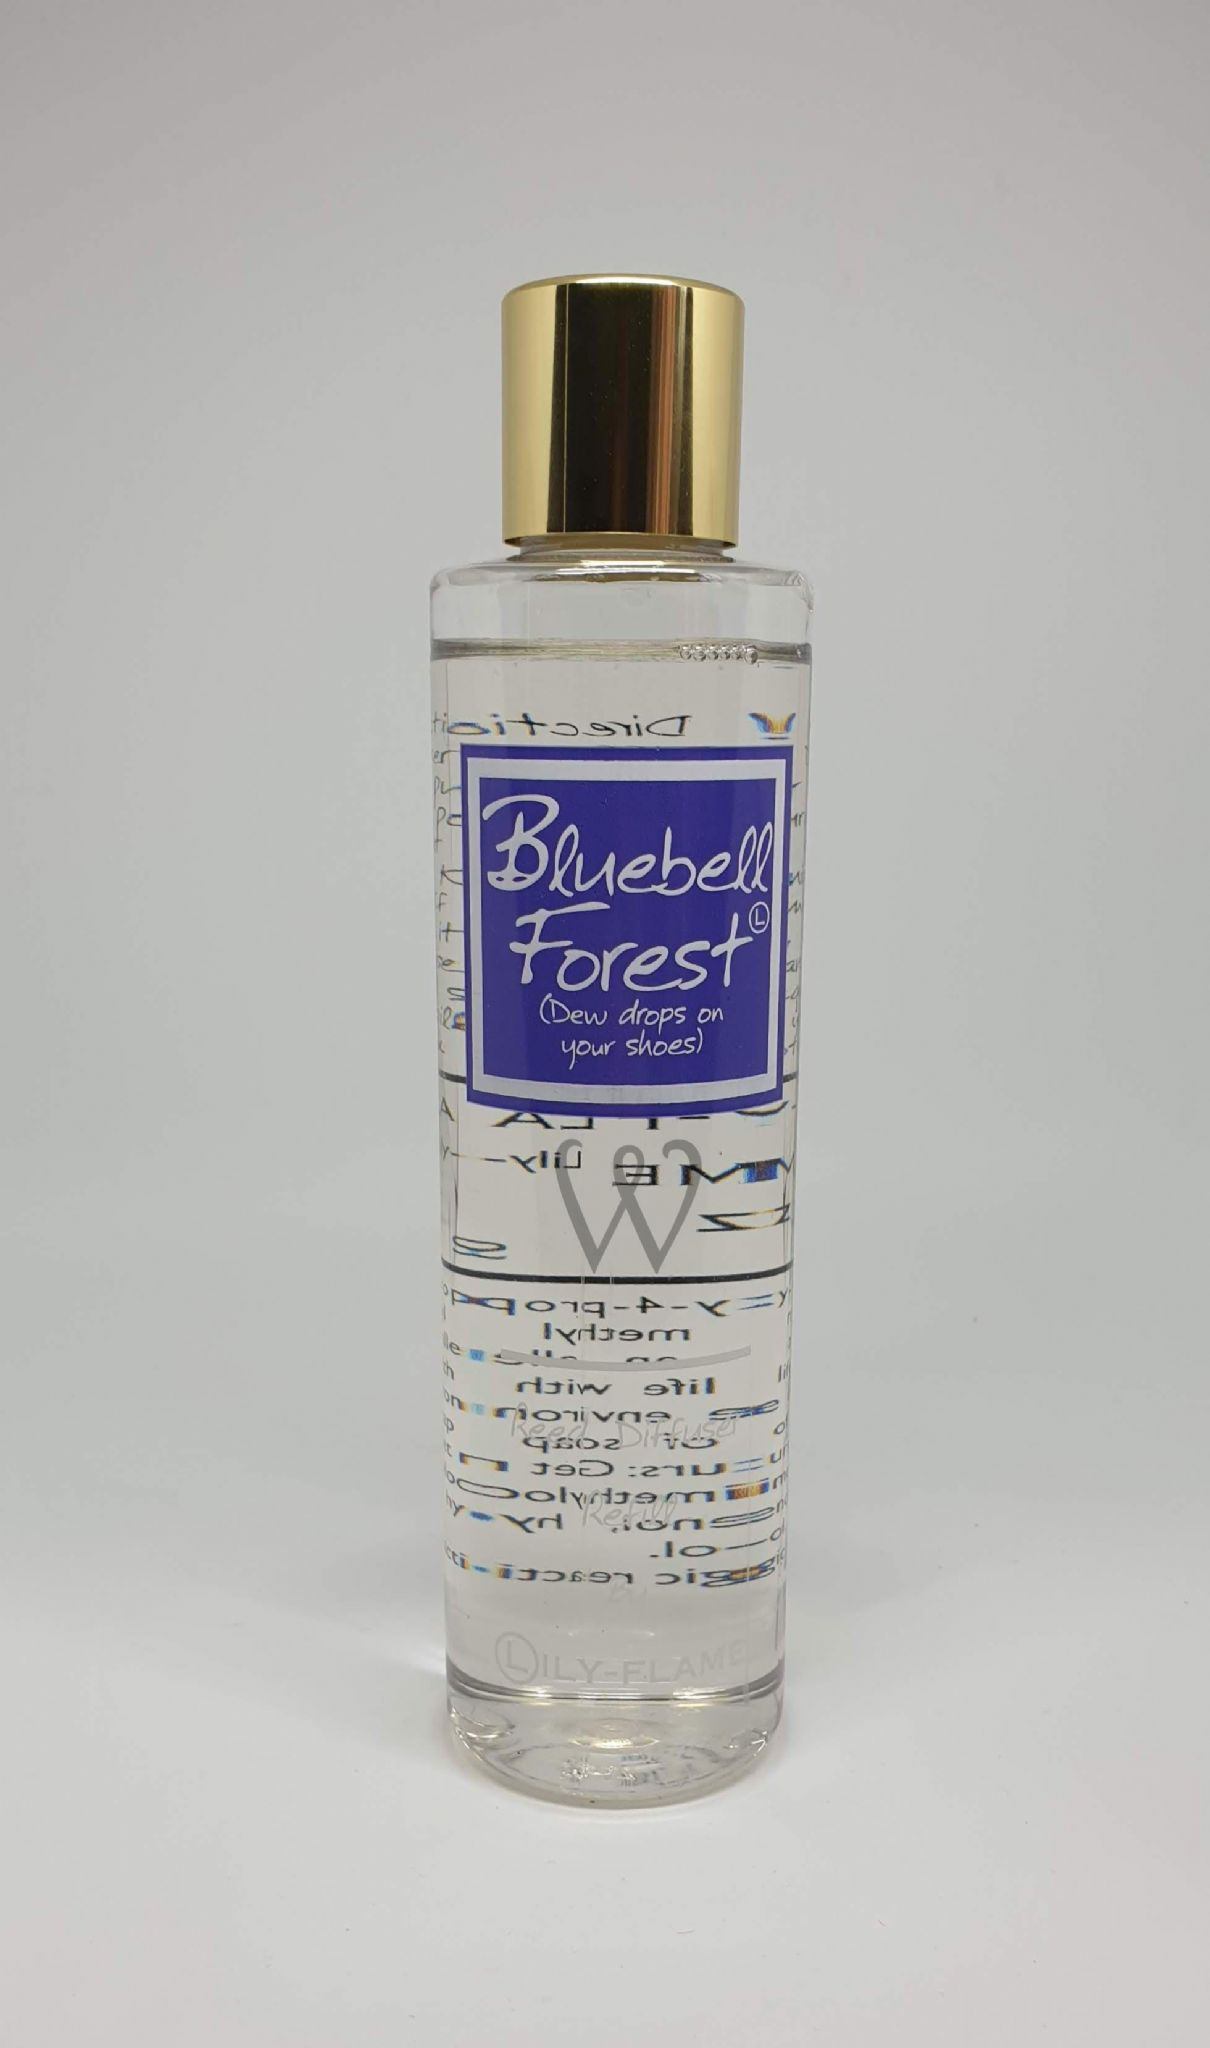 Lily flame reed diffuser refill - BLUEBELL FOREST 200ml